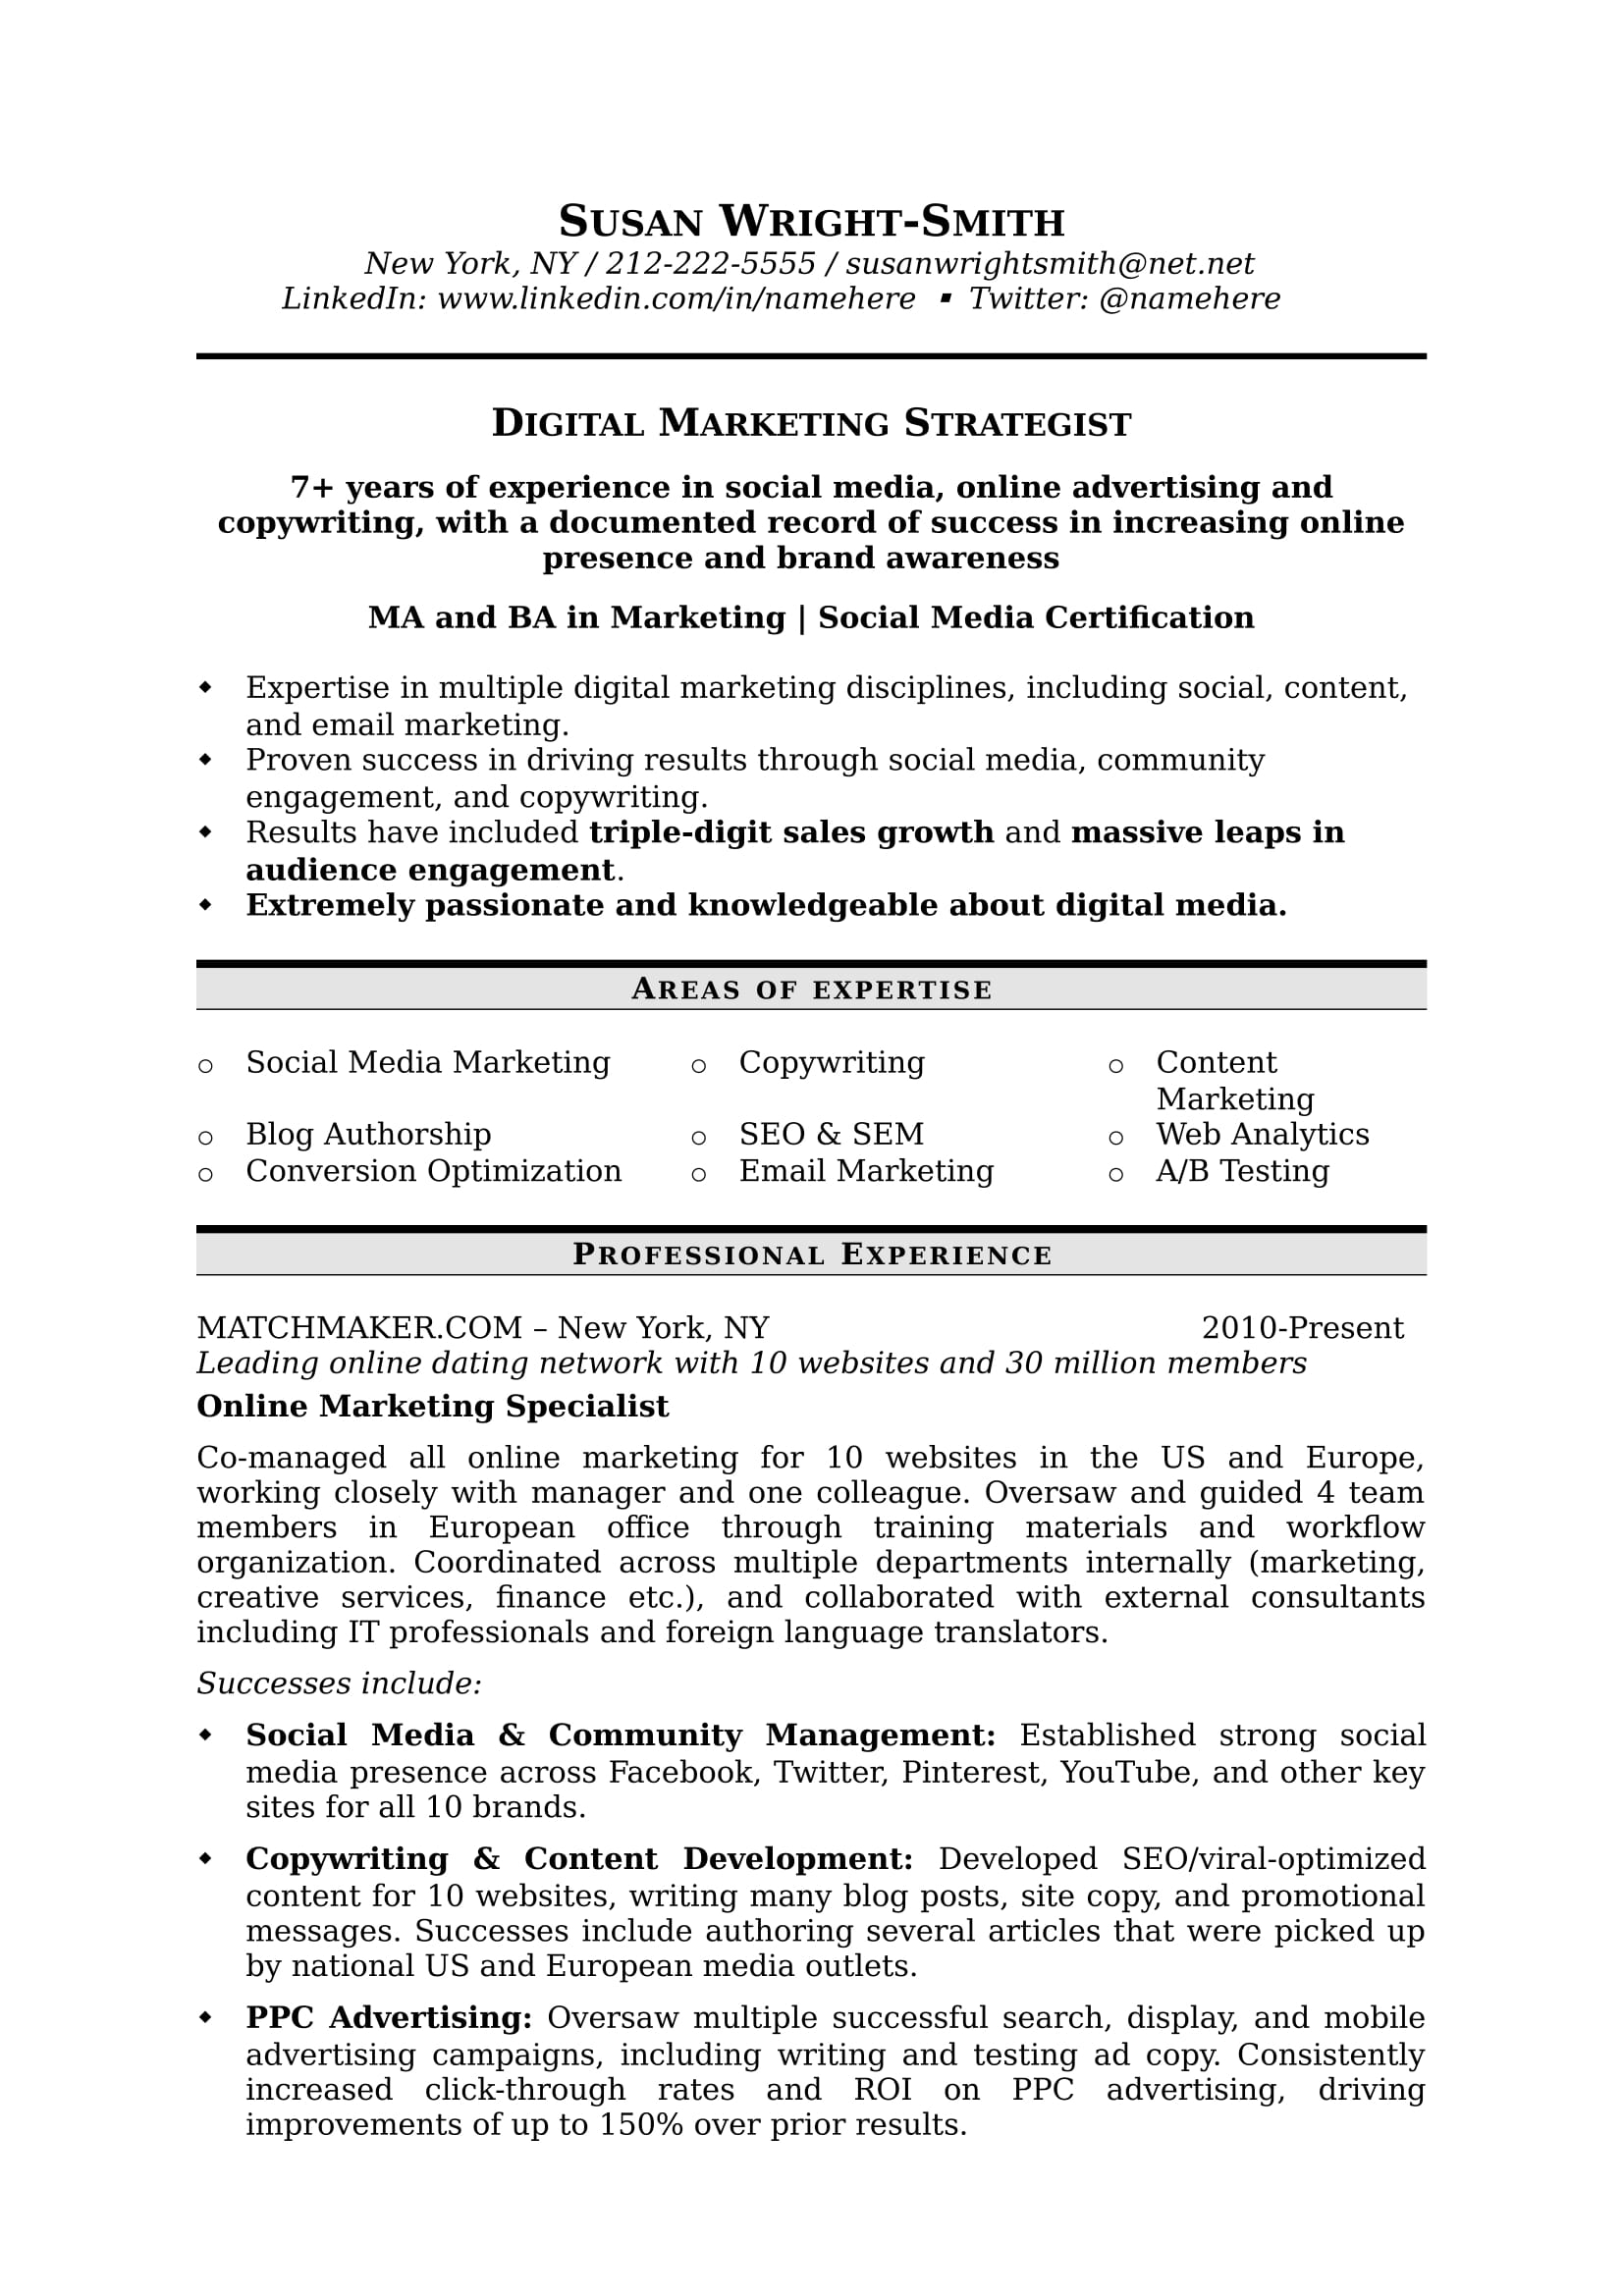 to write marketing resume hiring managers notice free templates samples content digital Resume Content Marketing Resume